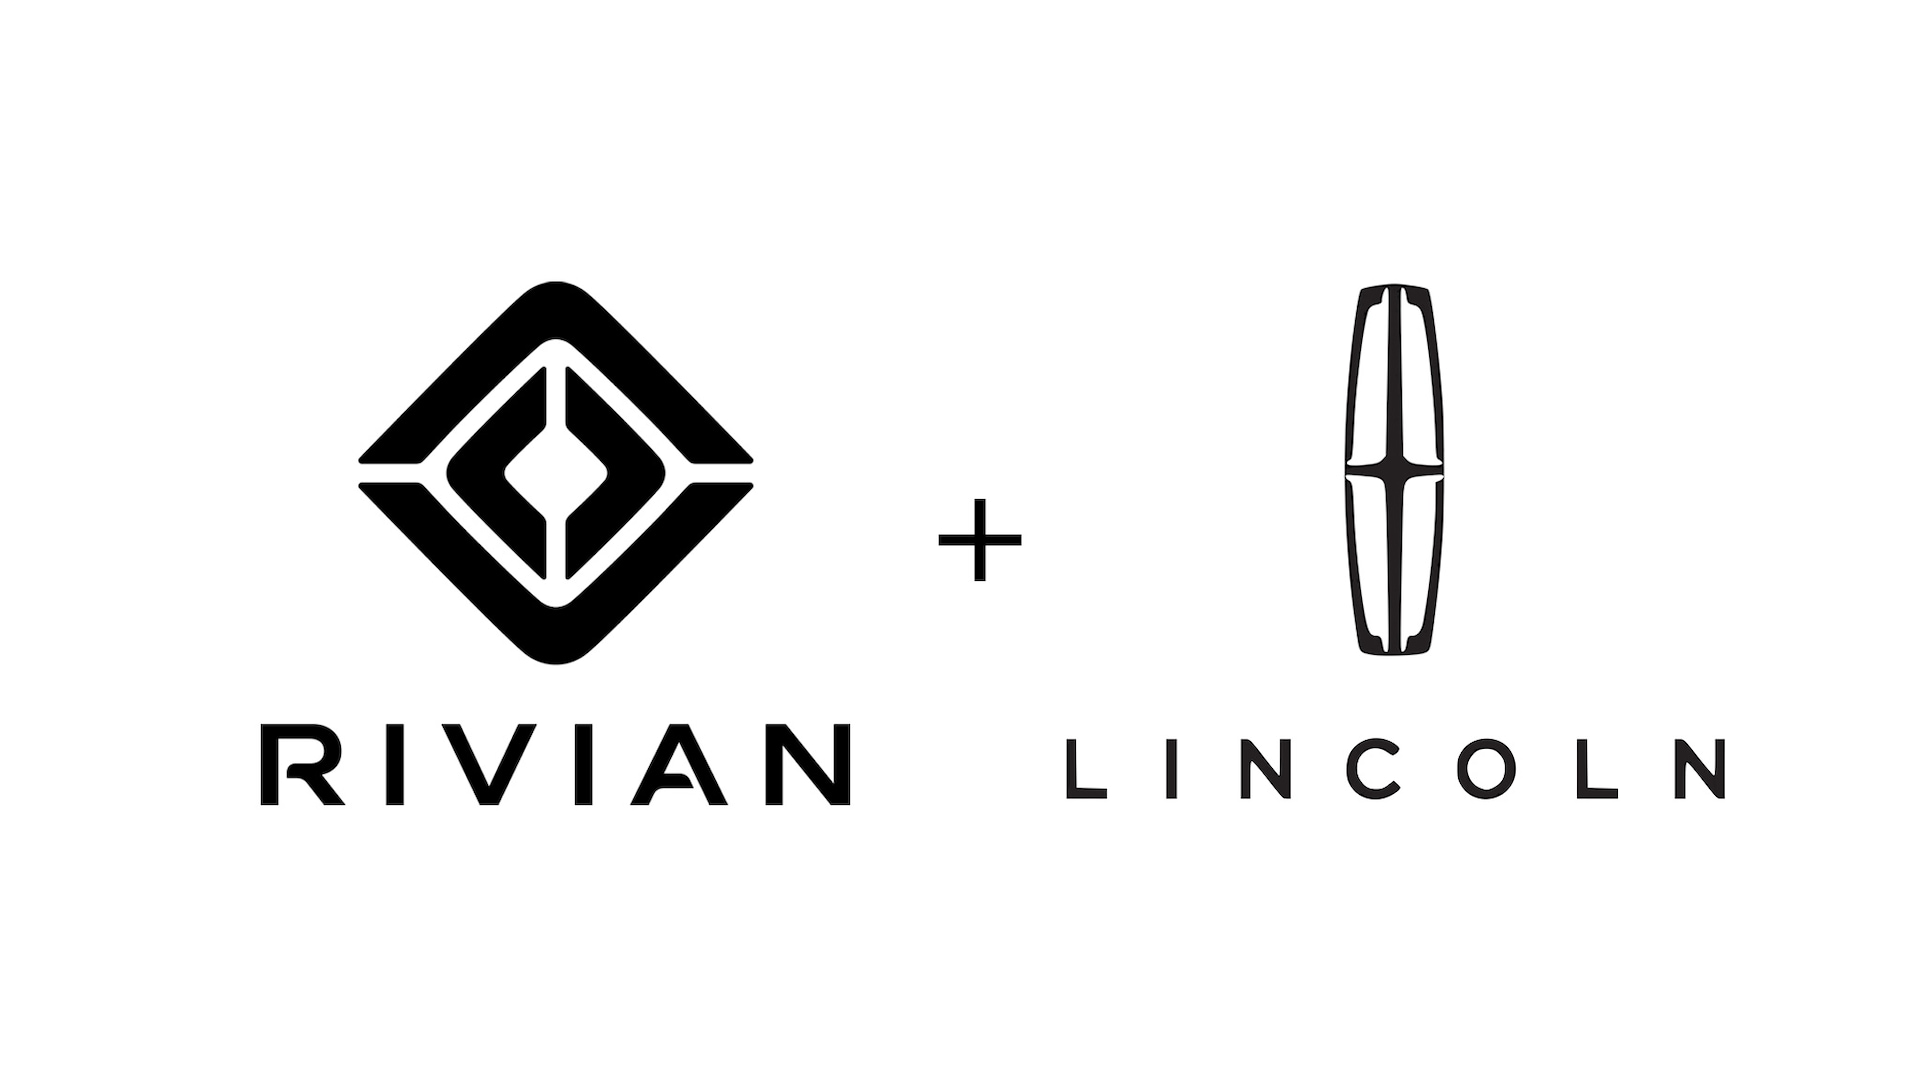 Official: Rivian to Build Electric Lincoln SUV for Ford